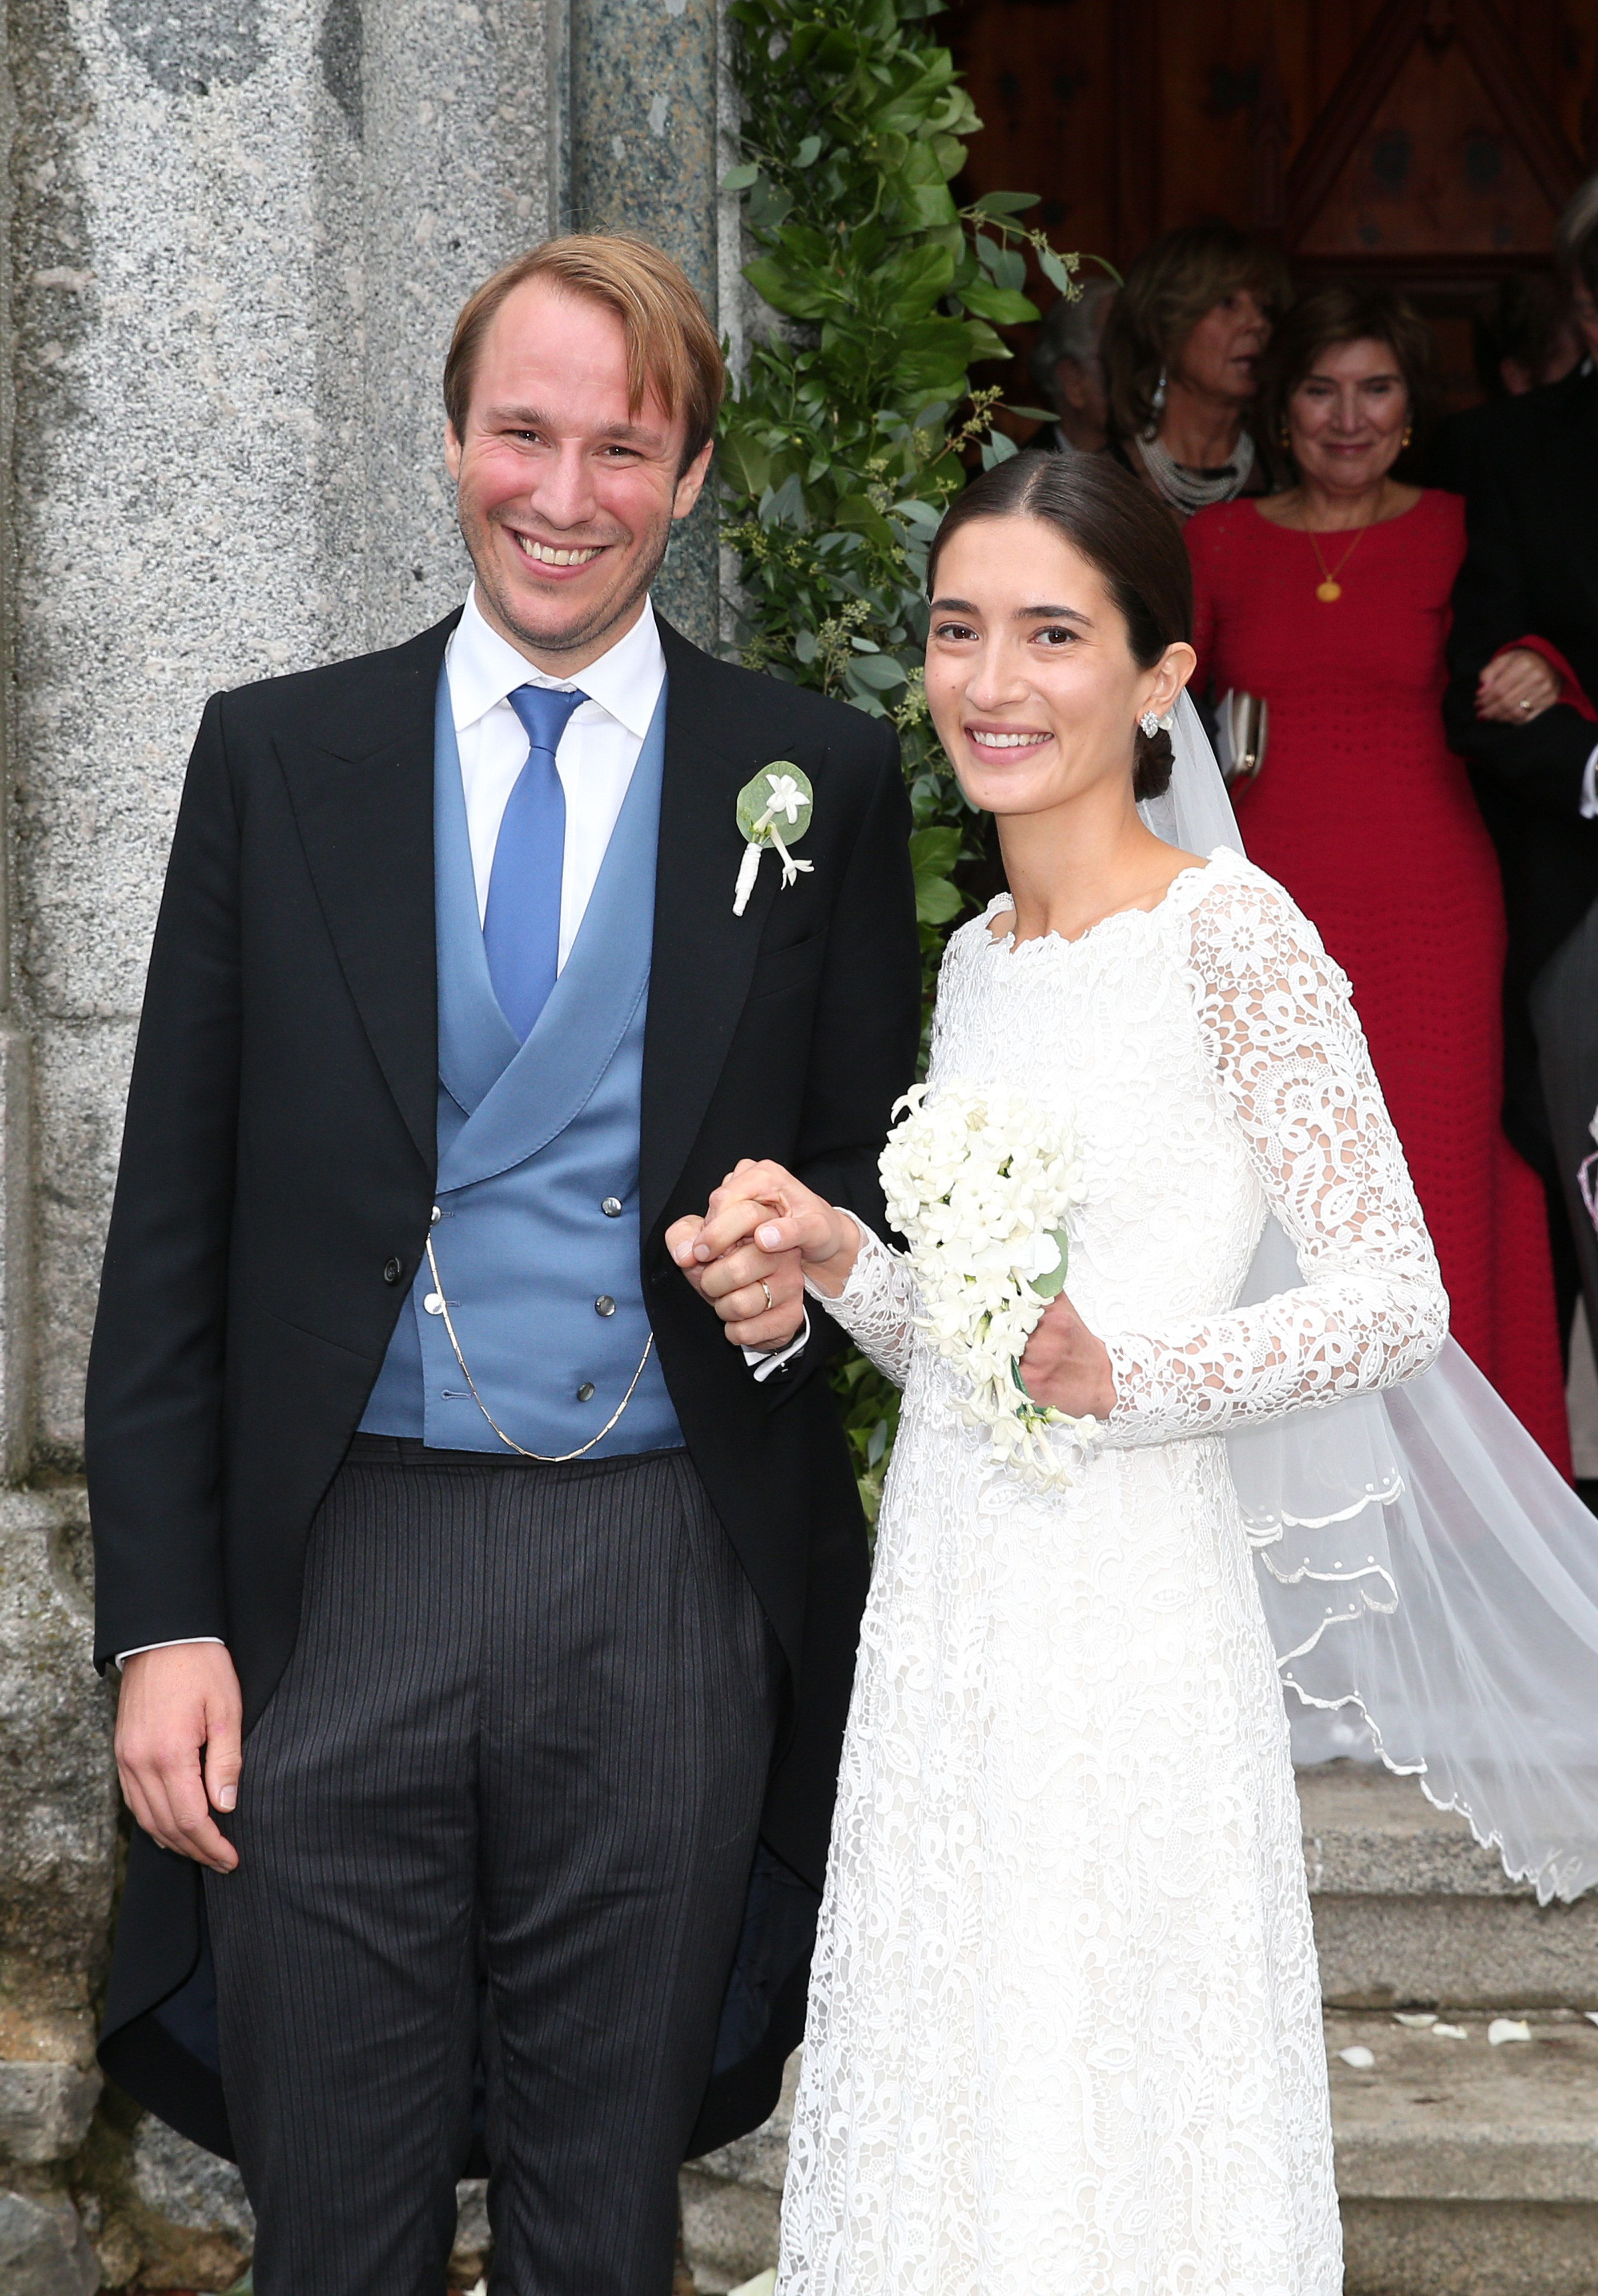 In the year of royal weddings, Prince Konstantin of Bavaria married Deniz Kaya, who will now hold the title of Princess, in the Eglise au Bois church in St. Mortiz, Switzerland .